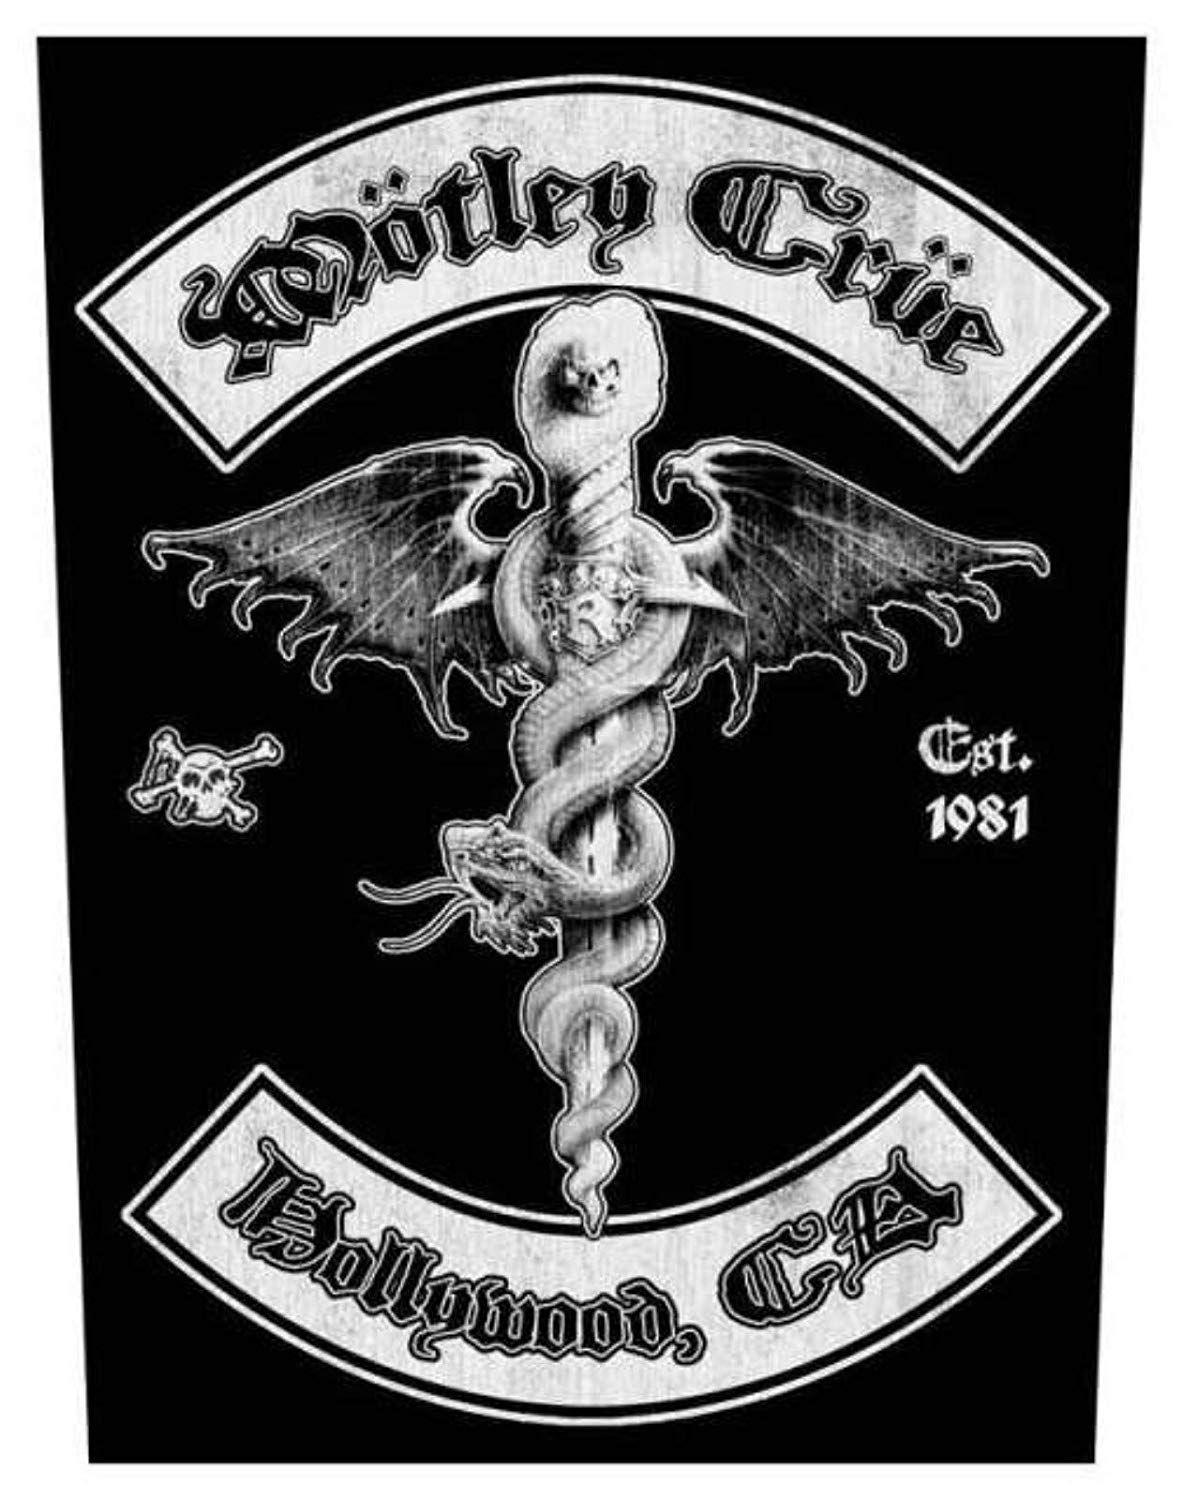 Motley Crue Hollywood Backpatch Amazon.co.uk Clothing